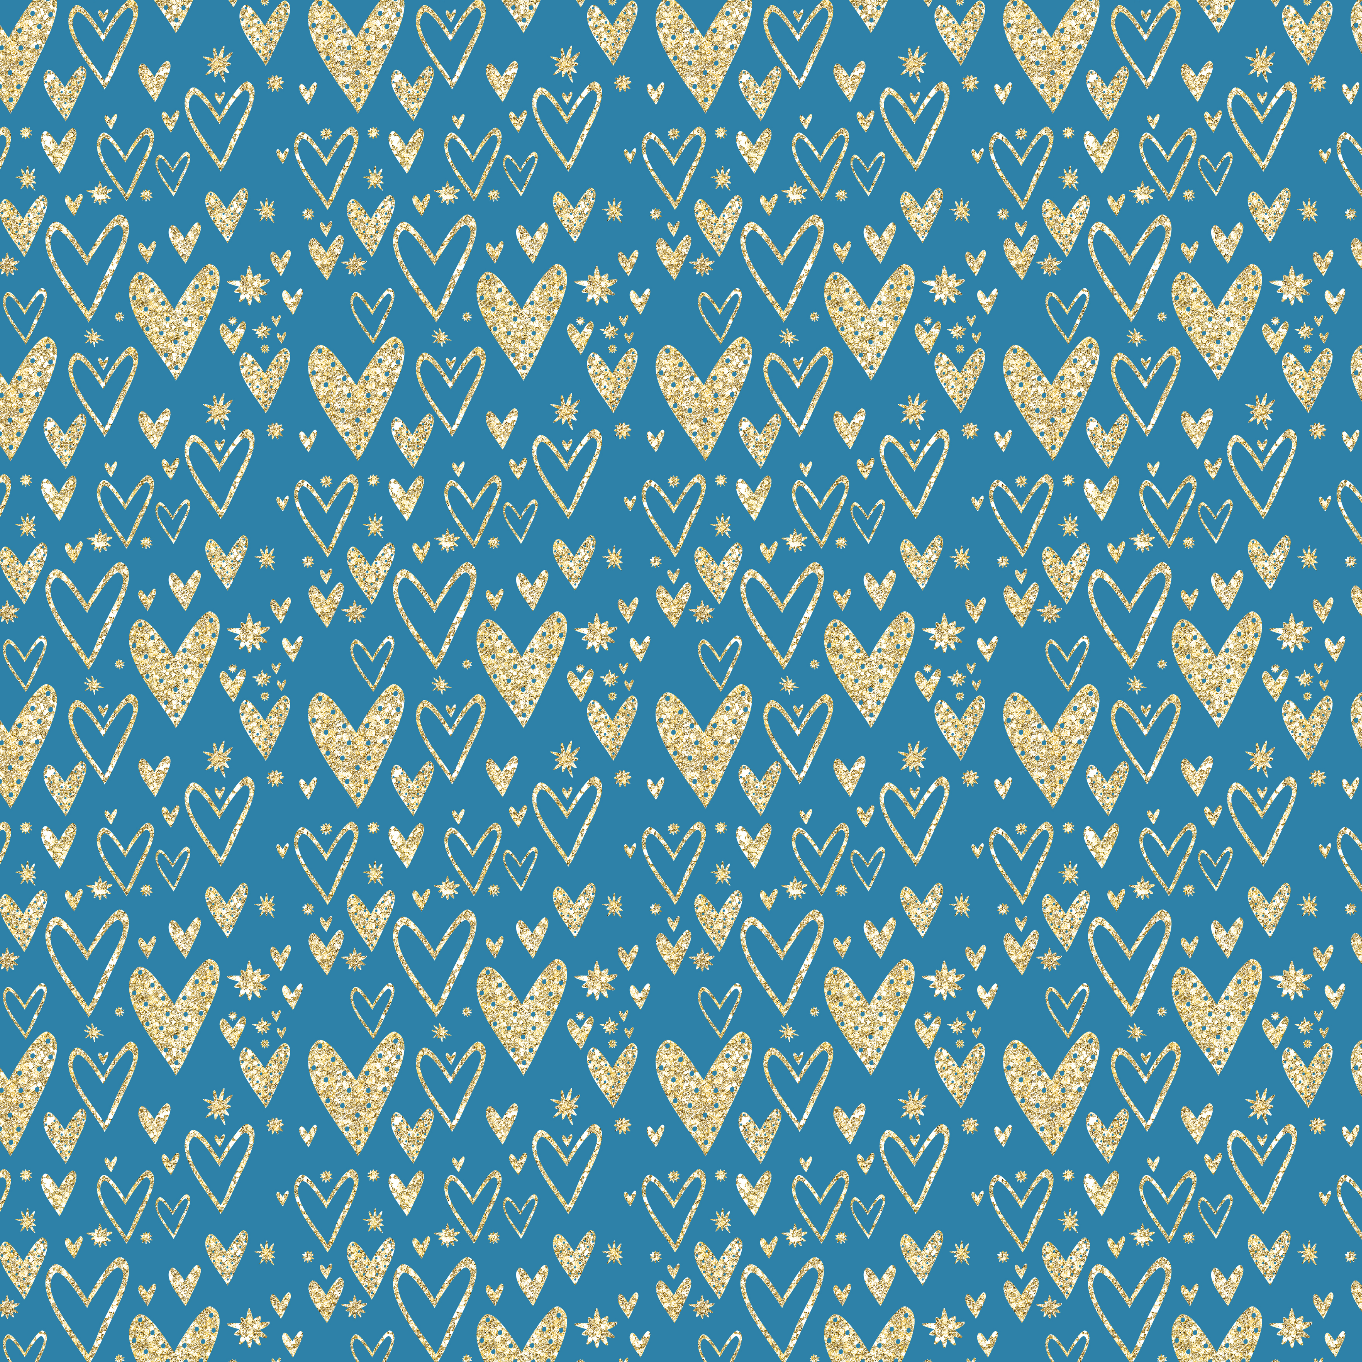 IN STOCK - Cinderella Blue Hearts - Digital Fabric Print